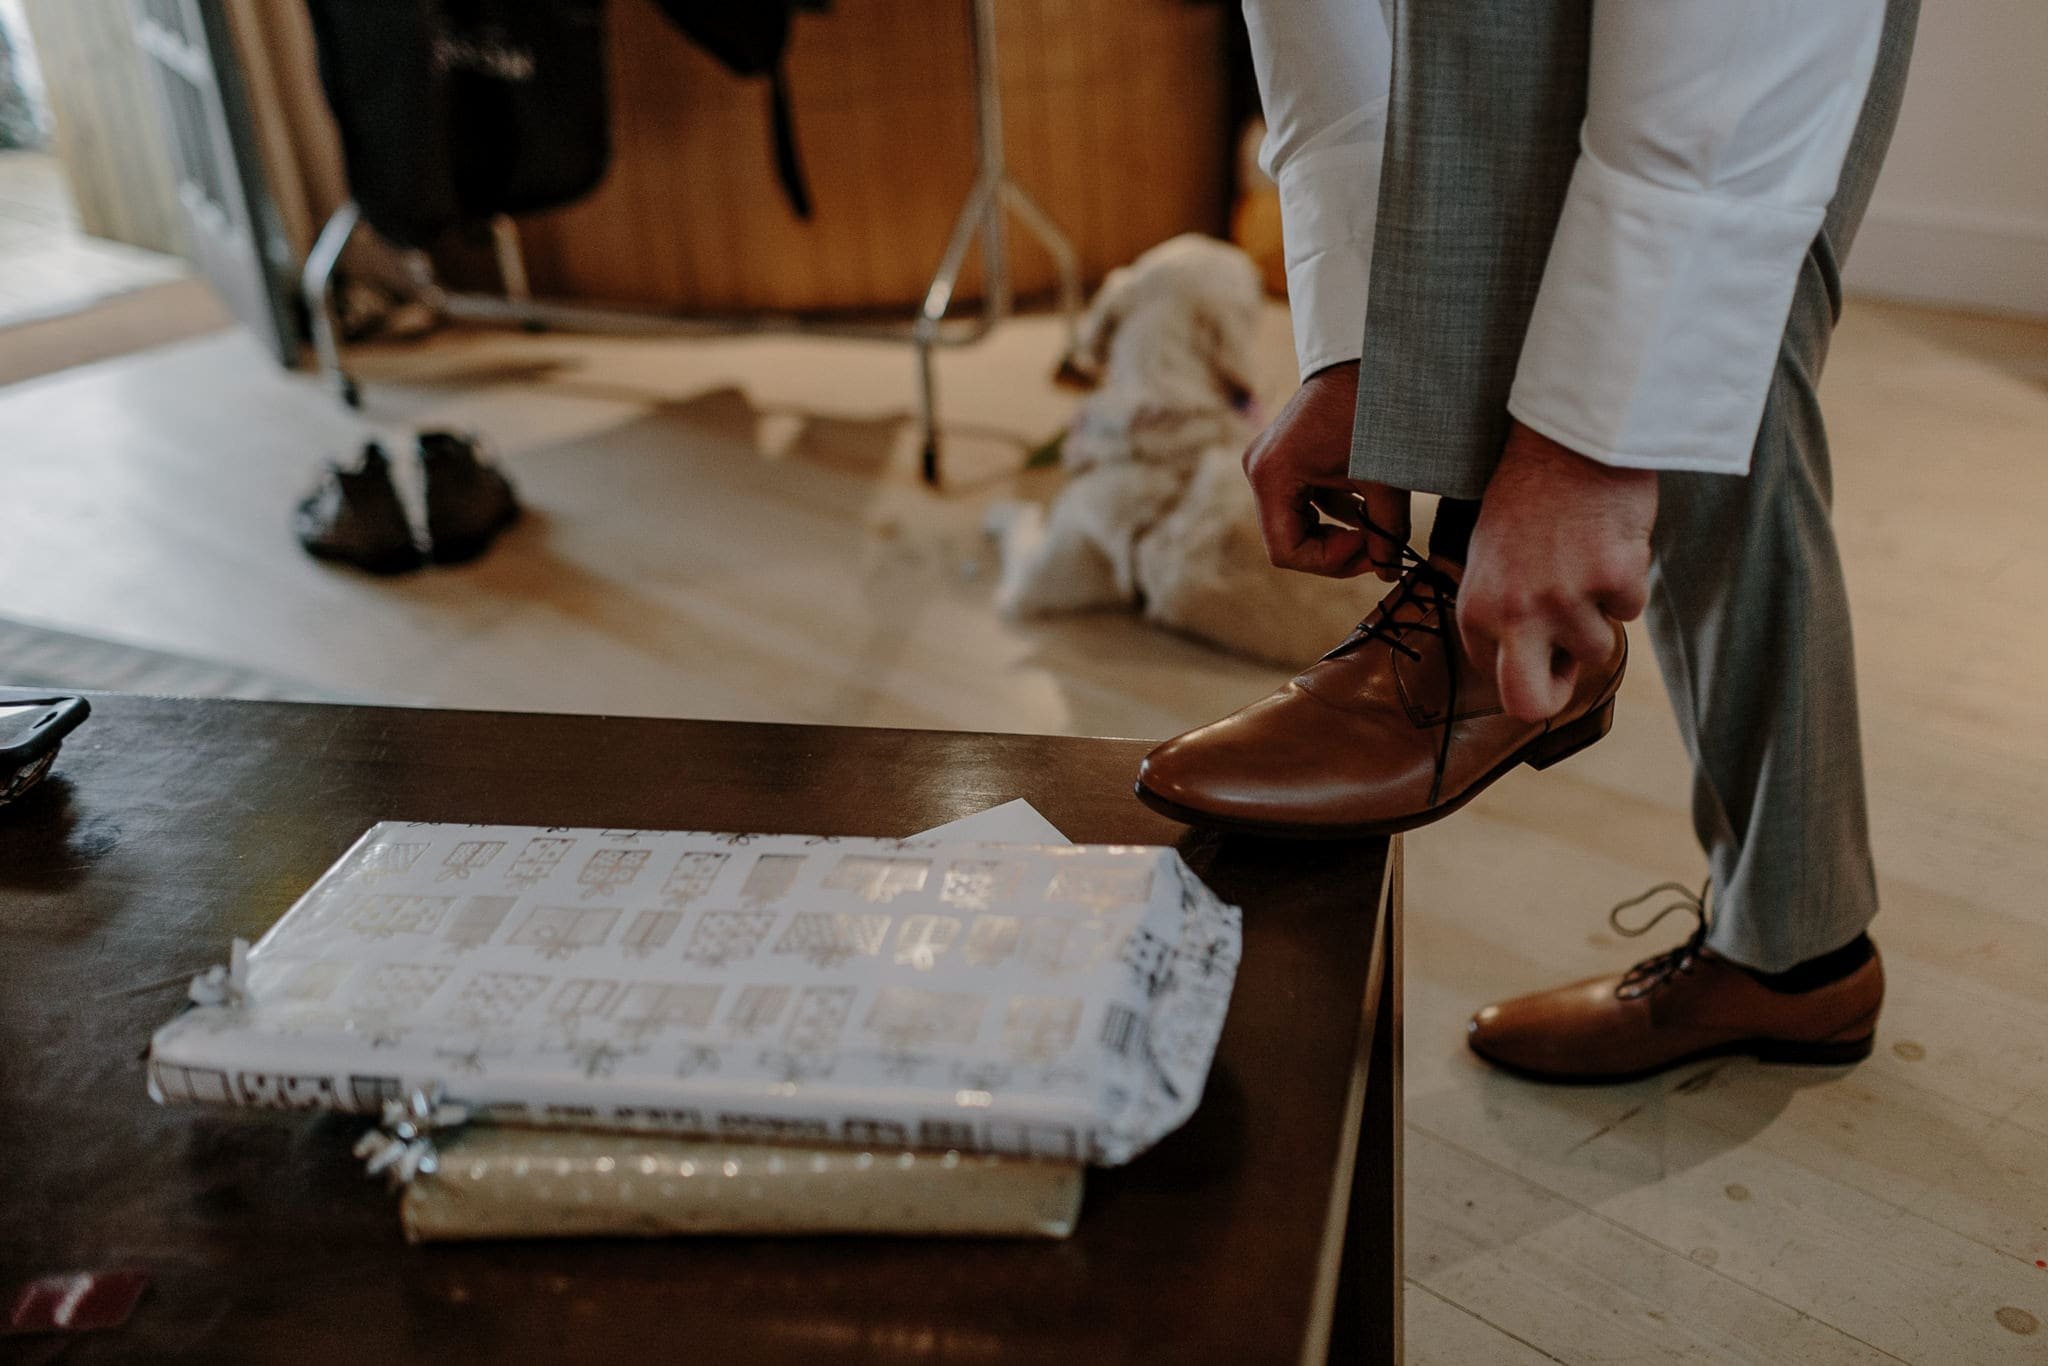 groom tying his shoe laces during morning wedding preparations